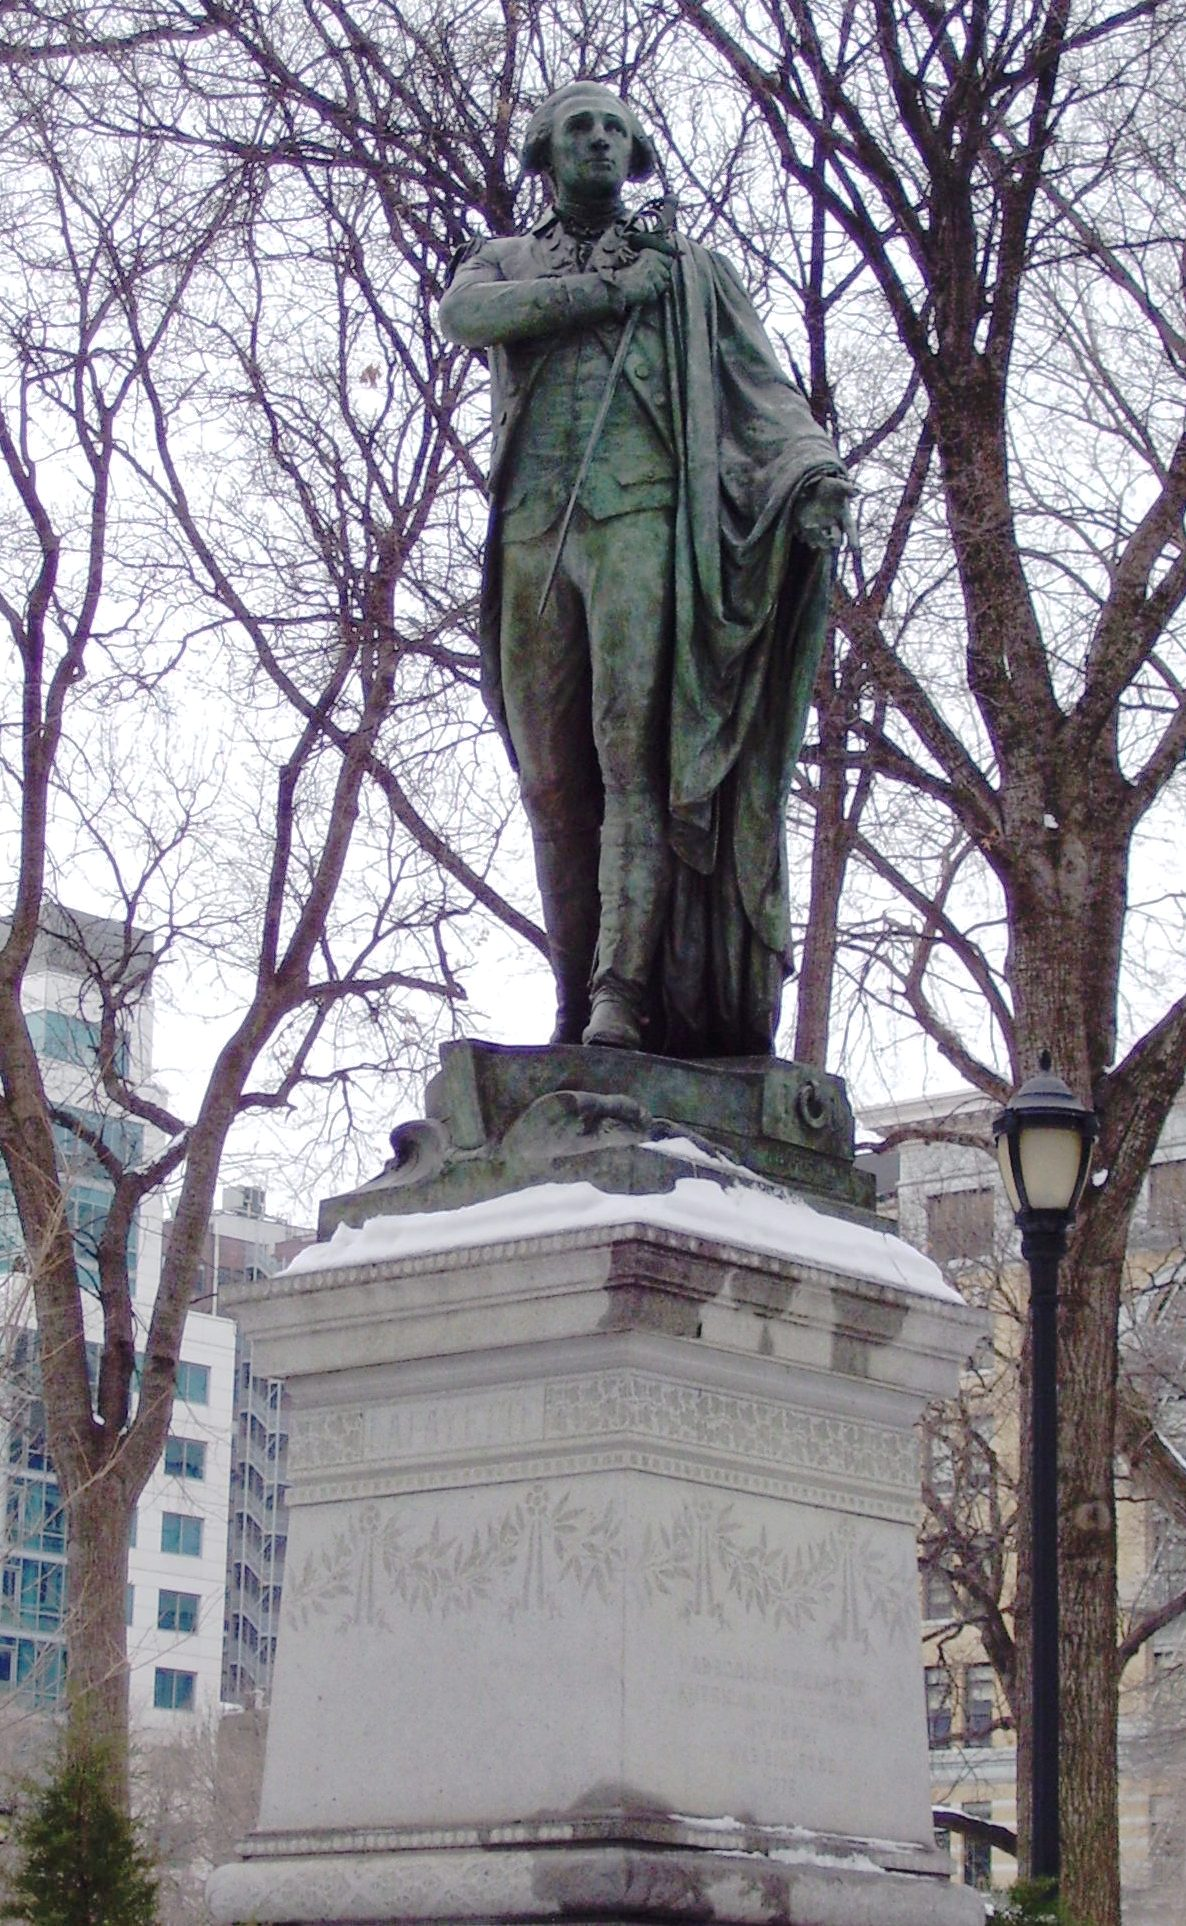 "This statue made of bronze honors Marquis de Lafayette. He was a French aristocrat who became an Army General in the United States and fought on behalf of American rebels during the American Revolutionary War. The statue was casted in 1873 by French sculptor Frédéric Auguste Bartholdi, and was dedicated in 1876. The statue can be found in Union Square Park in Manhattan, New York. It is located on Park Avenue South and 16th street and is always free and open to the public. The piece is a sign of appreciation from the French government for help that the state of New York gave to Paris during the Franco-Prussian War. It is inscripted with the words, ""in remembrance of sympathy in times of trial."""